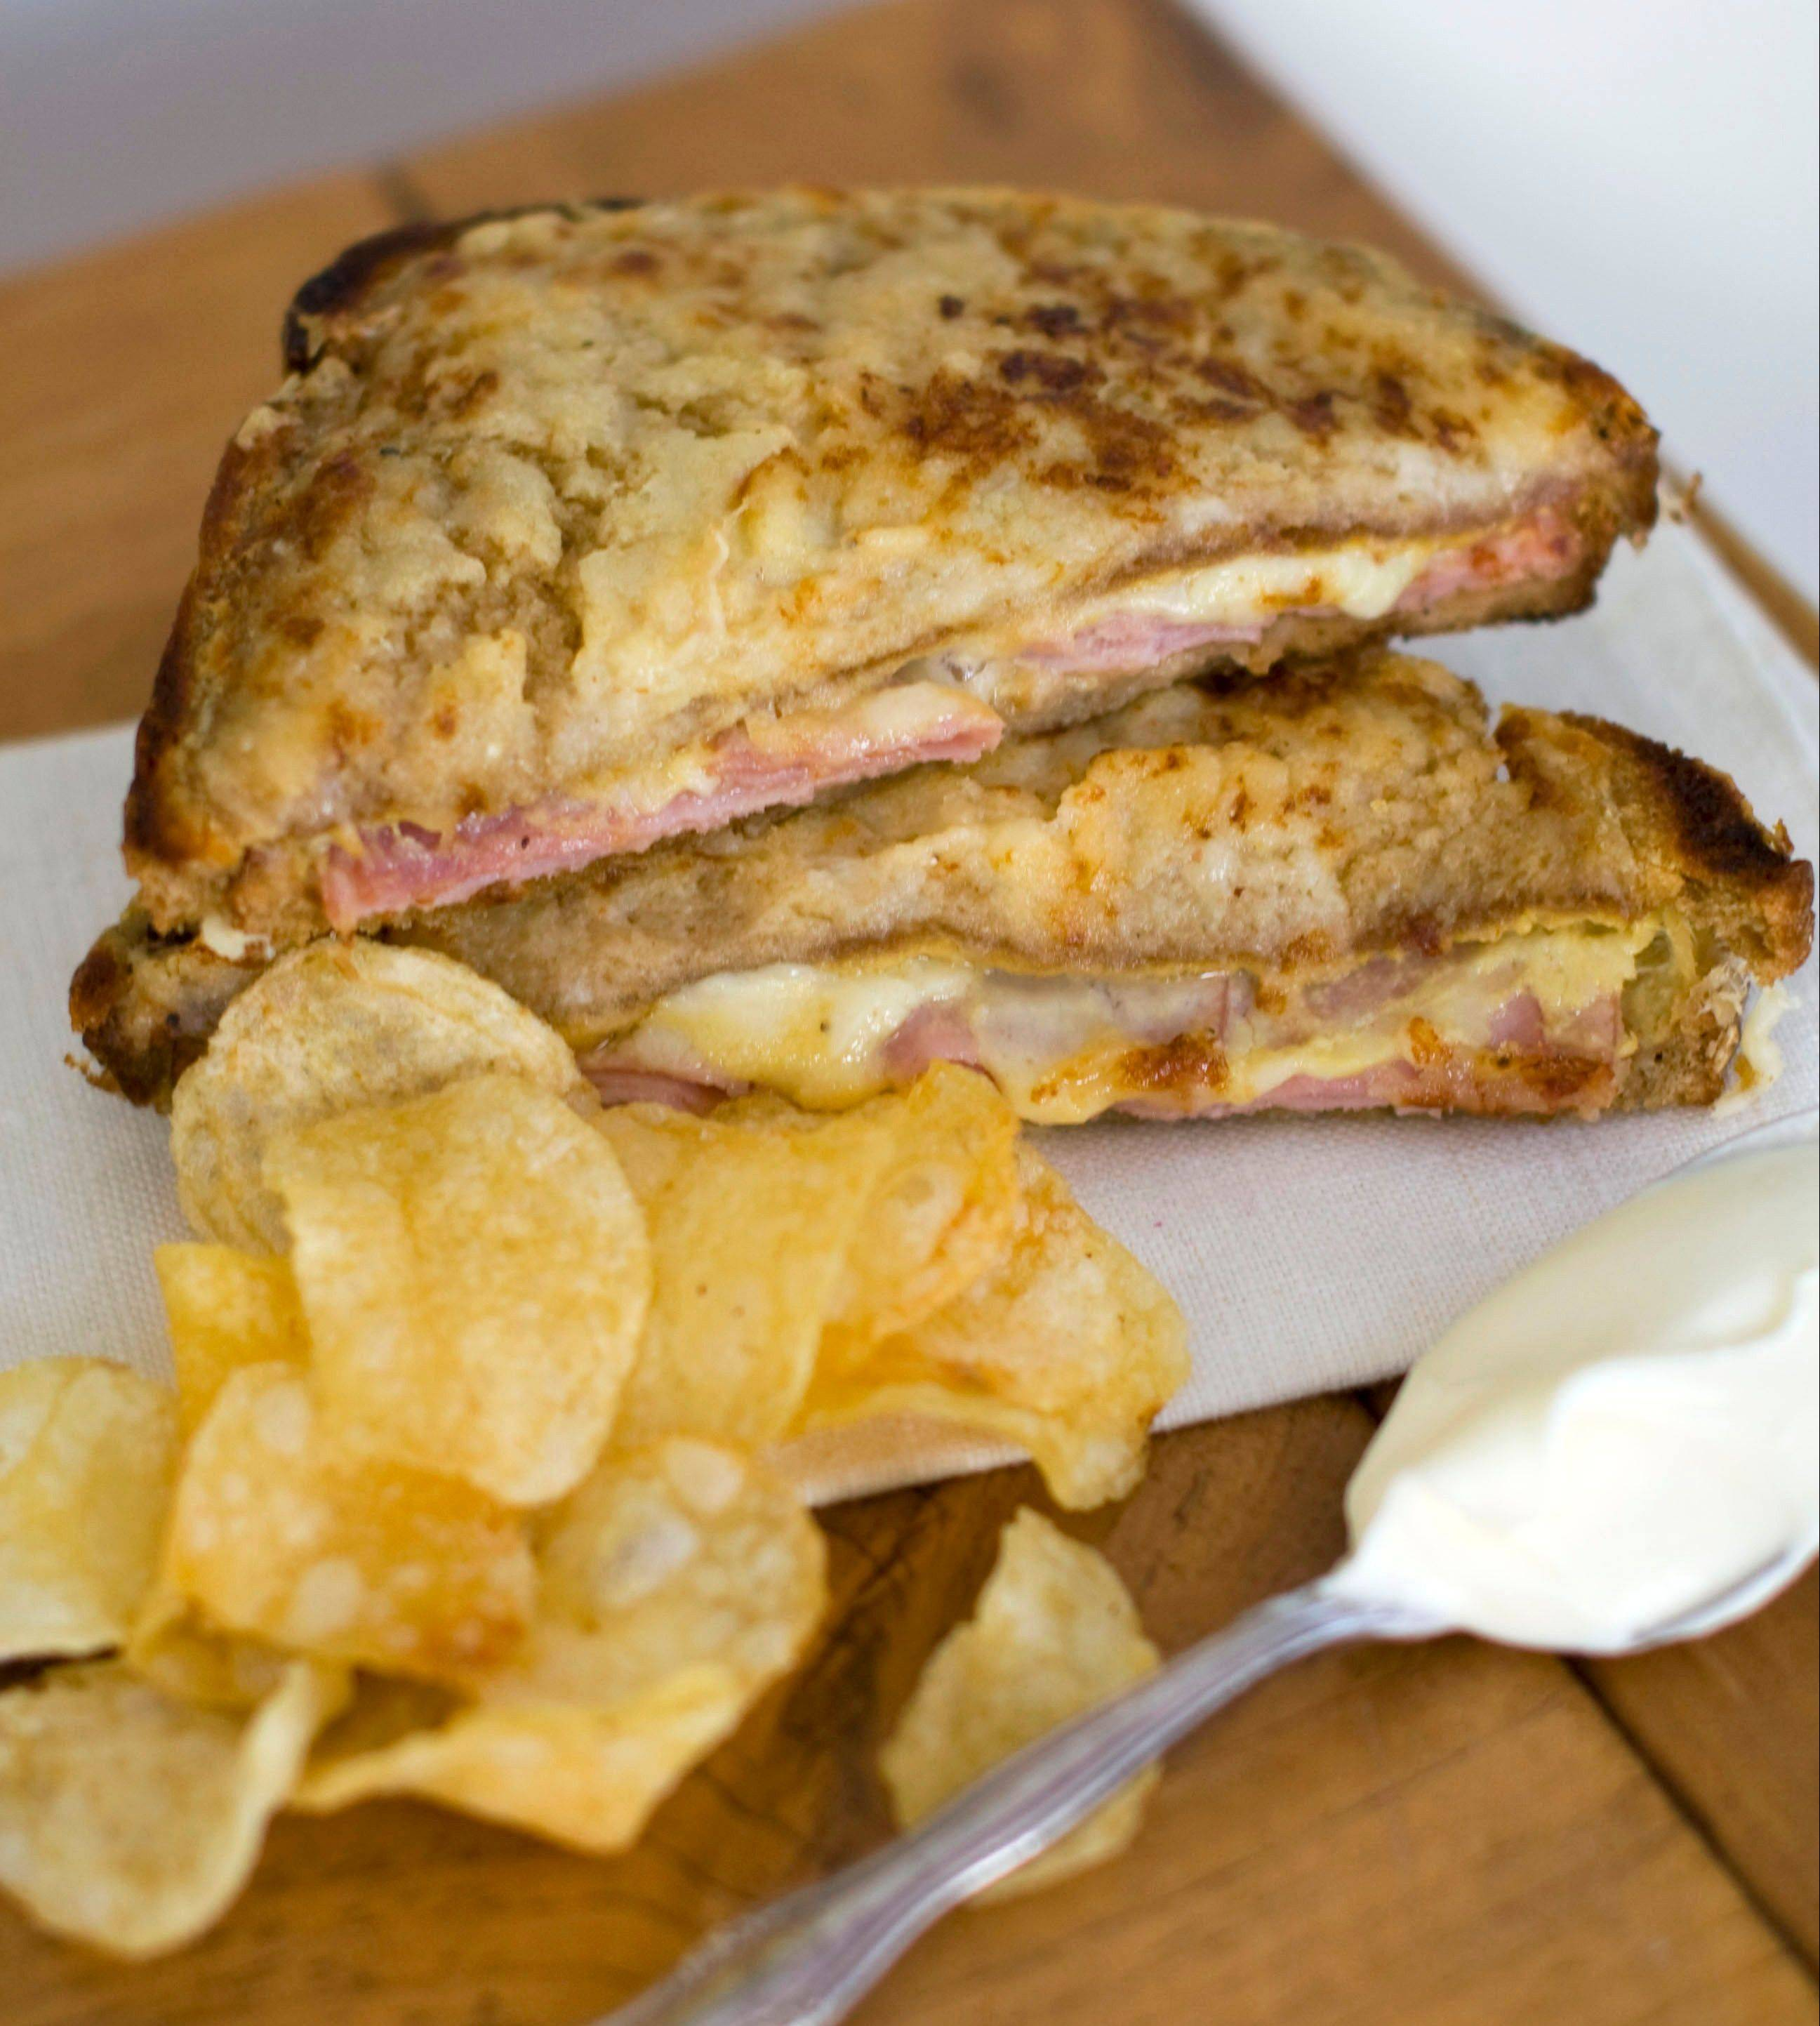 Creme fraiche thickened with cornstarch and pepper sauce adds to the oo-la-la factor of Croque Monsieur sandwiches.